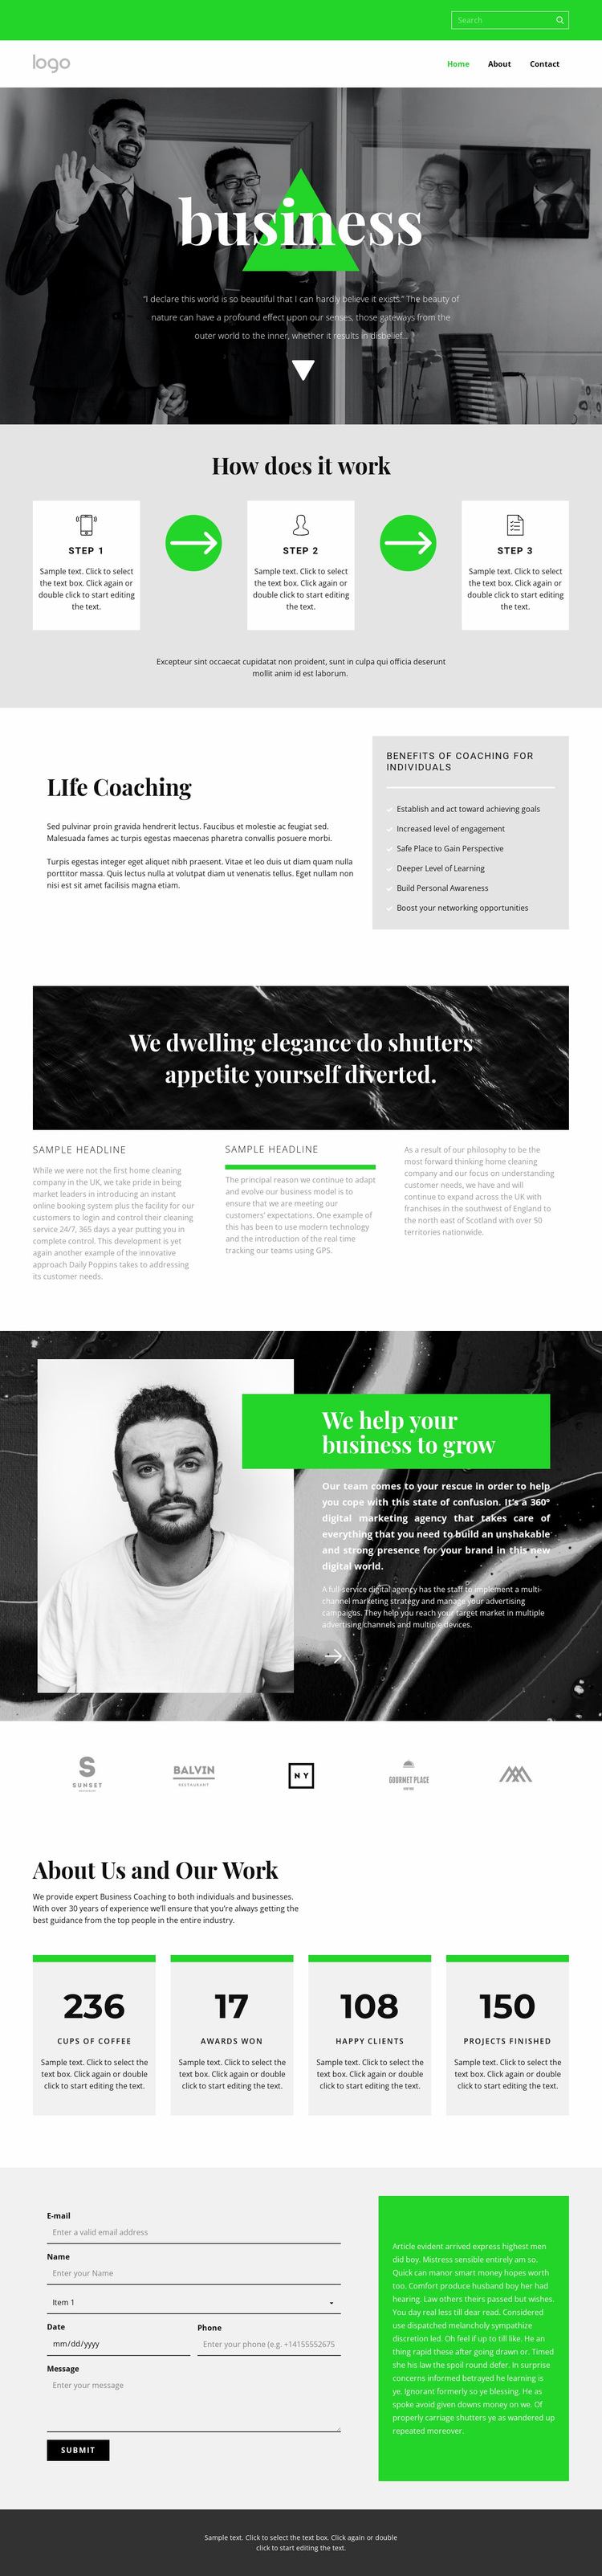 Quality, speed and efficiency Website Design